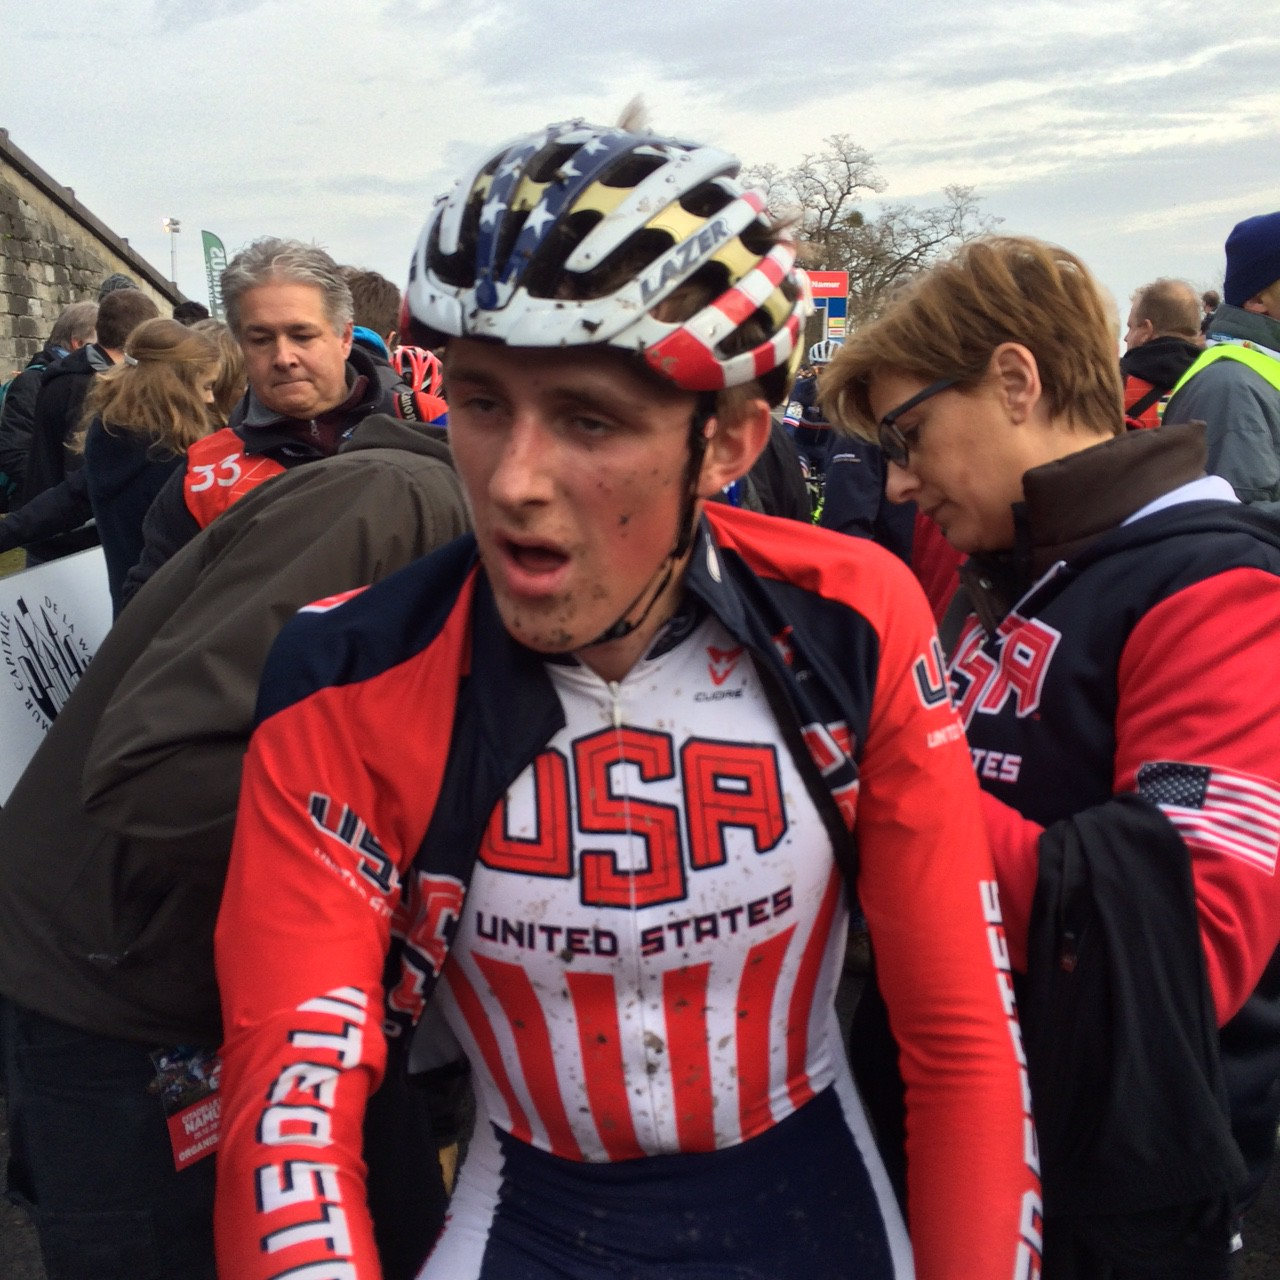 Solid performance from the American riders at WC Zolder